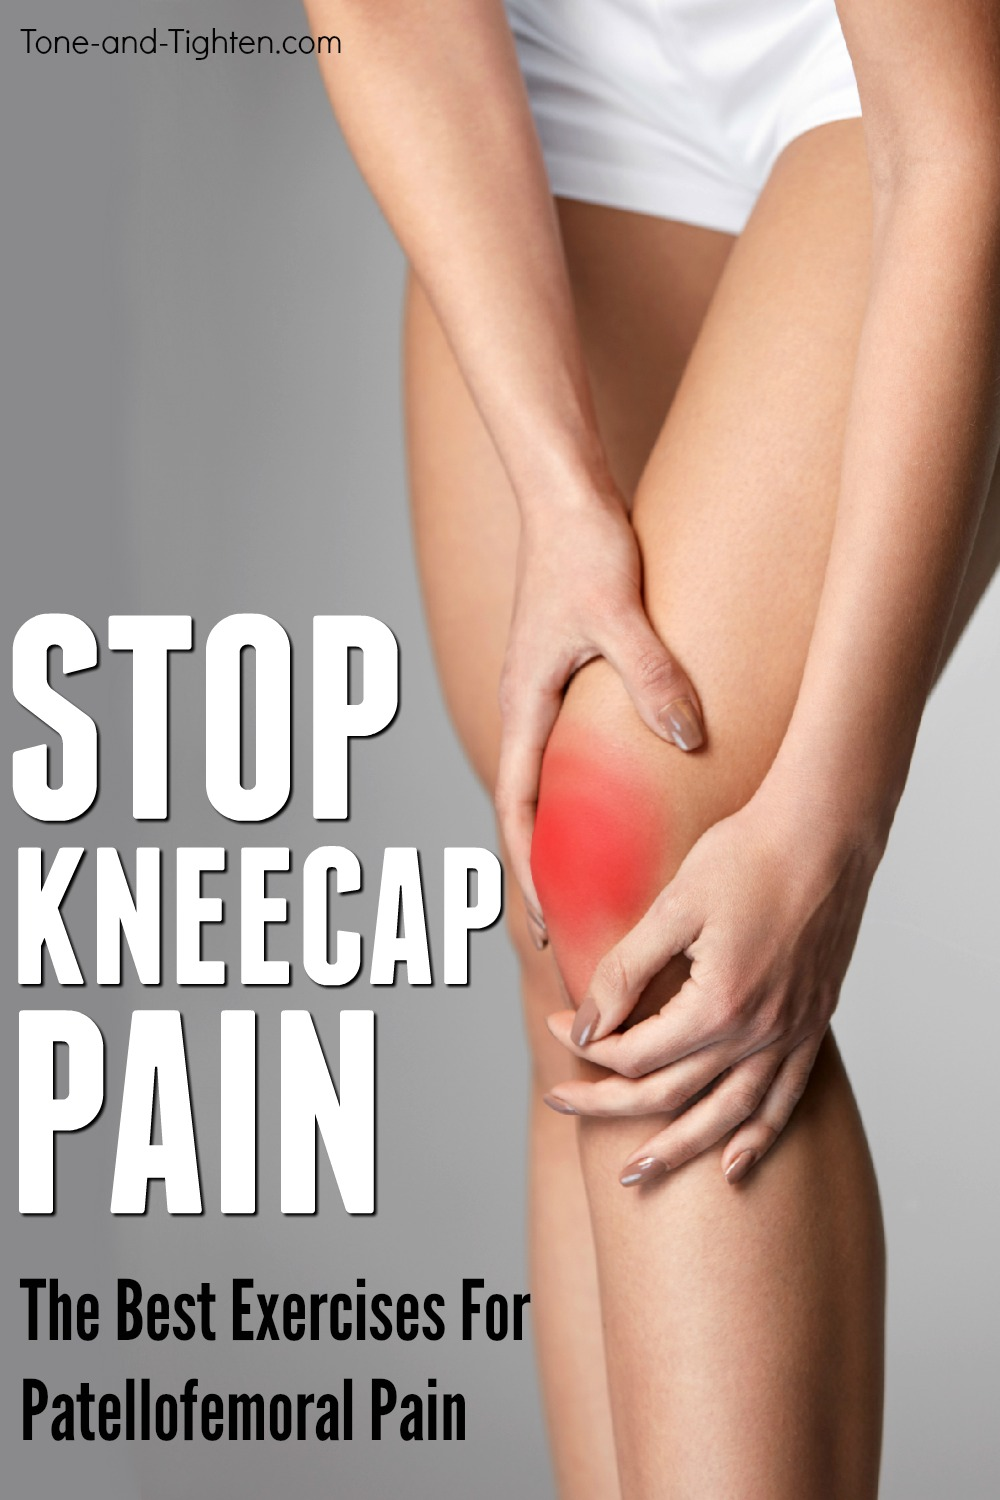 The best home exercises to eliminate kneecap pain. Patellofemoral pain exercises you can do right at home!